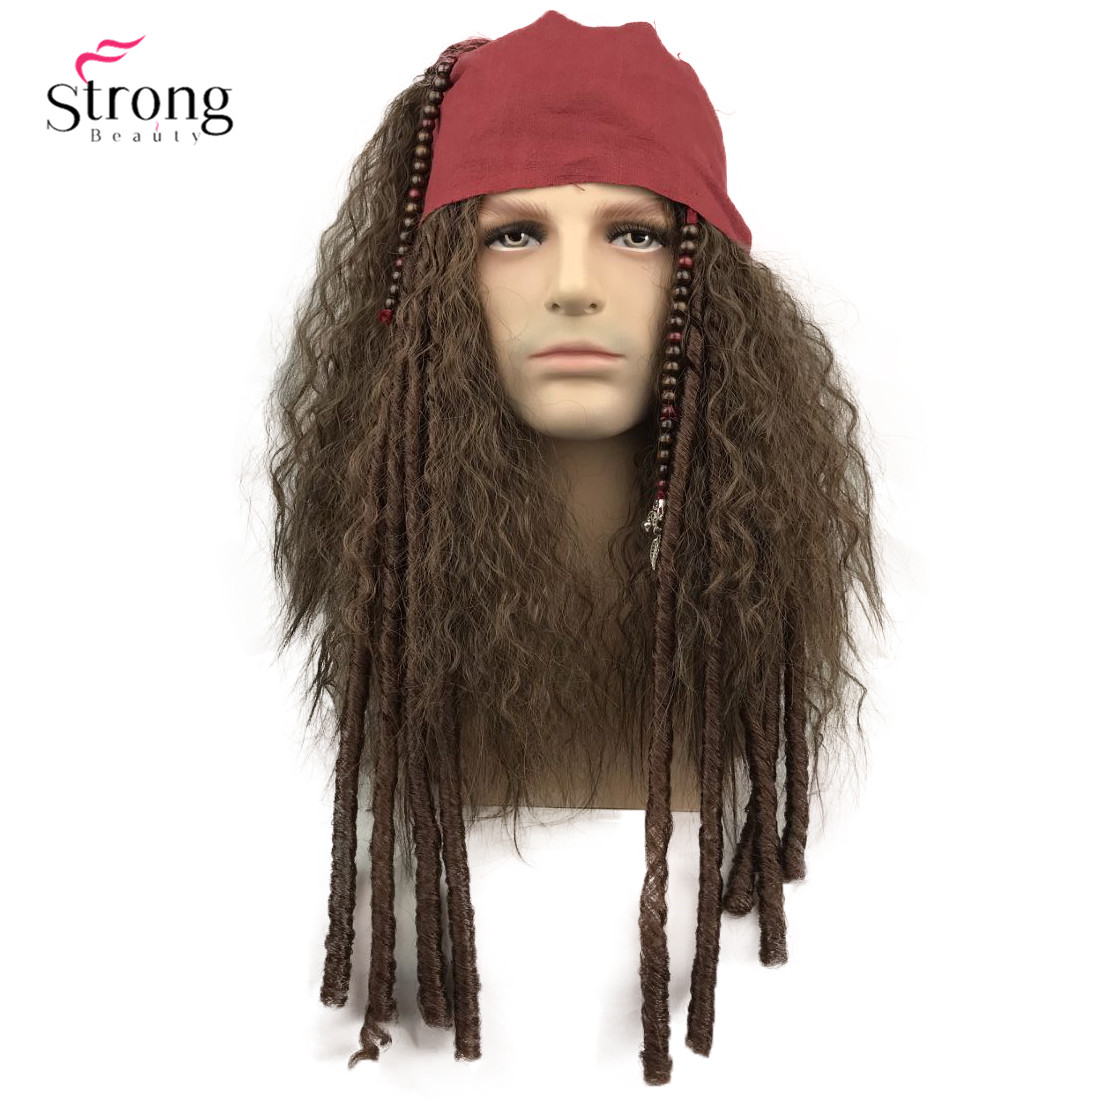 StrongBeauty Pirate Wig Cosplay Jack Sparrow Captain Wigs And Complete Accessories Synthetic Hair